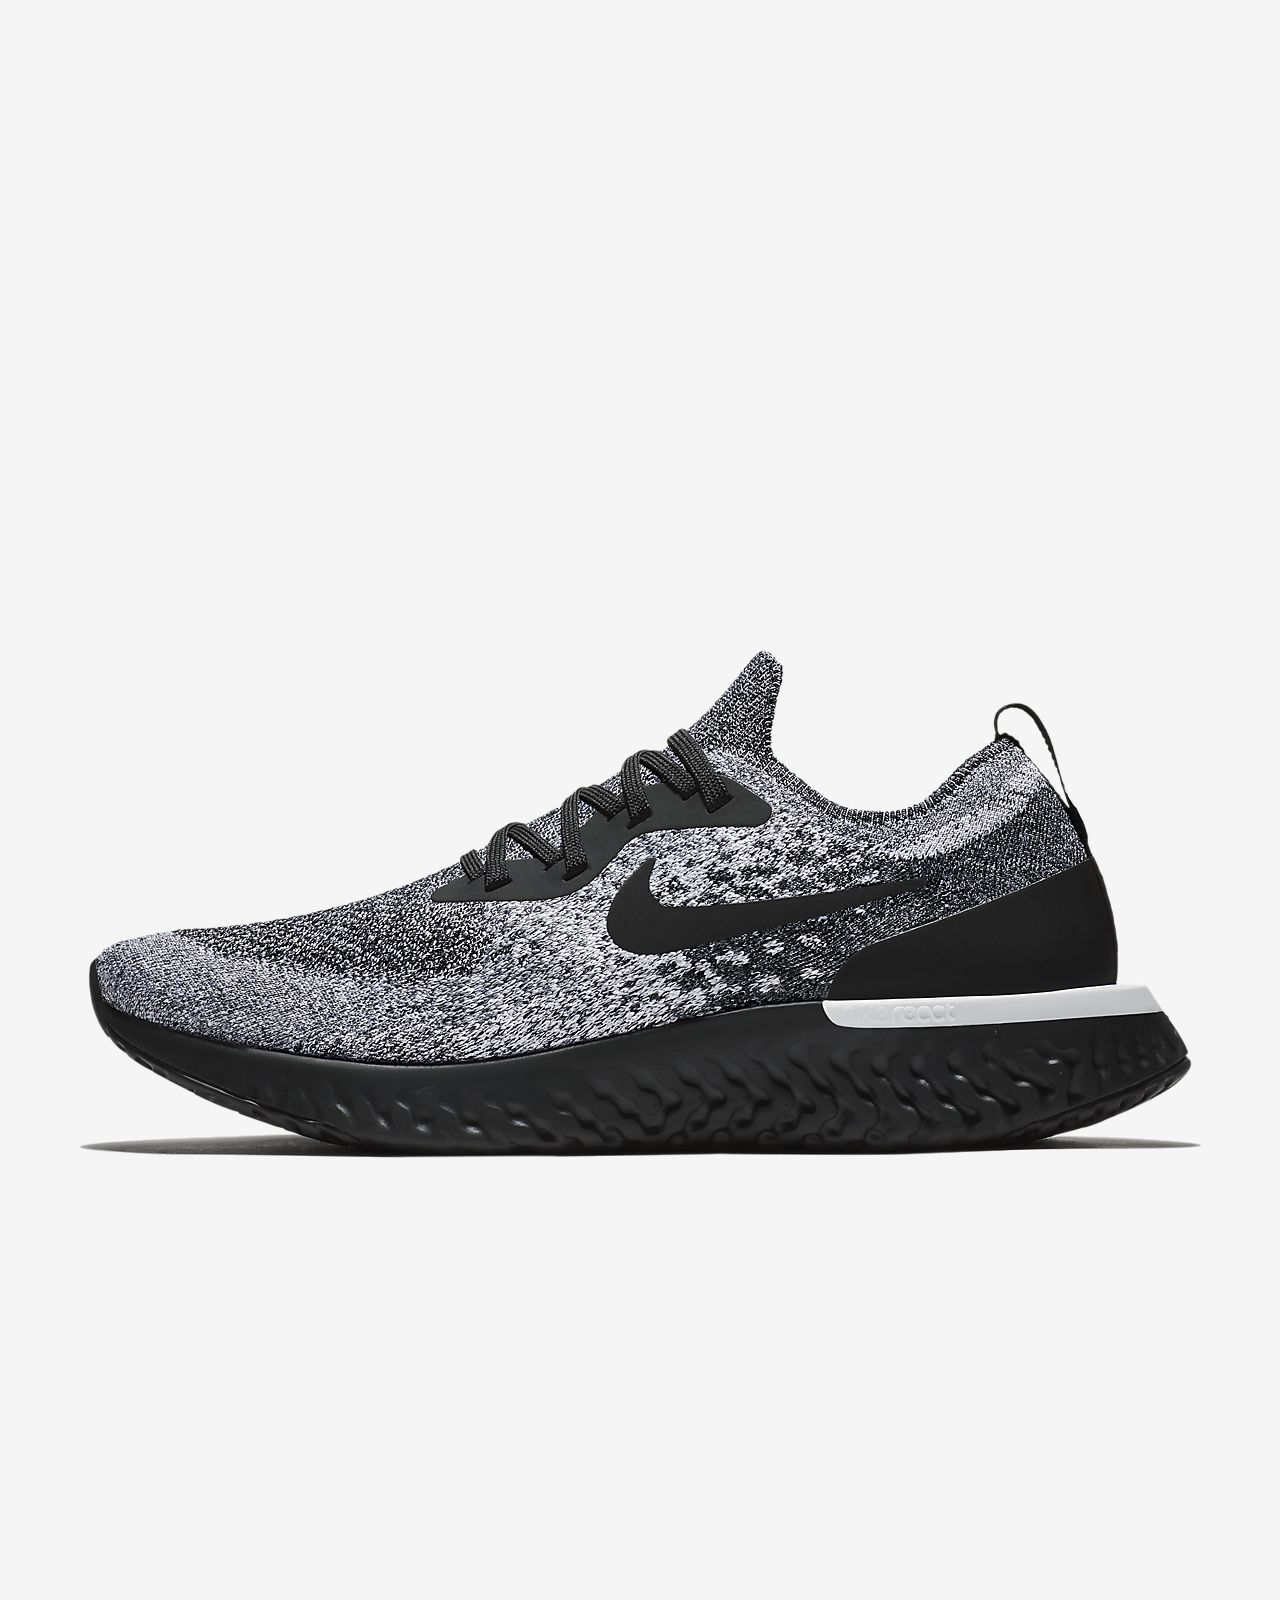 42c512928b6 Nike Epic React Flyknit Men s Running Shoe. Nike.com ID